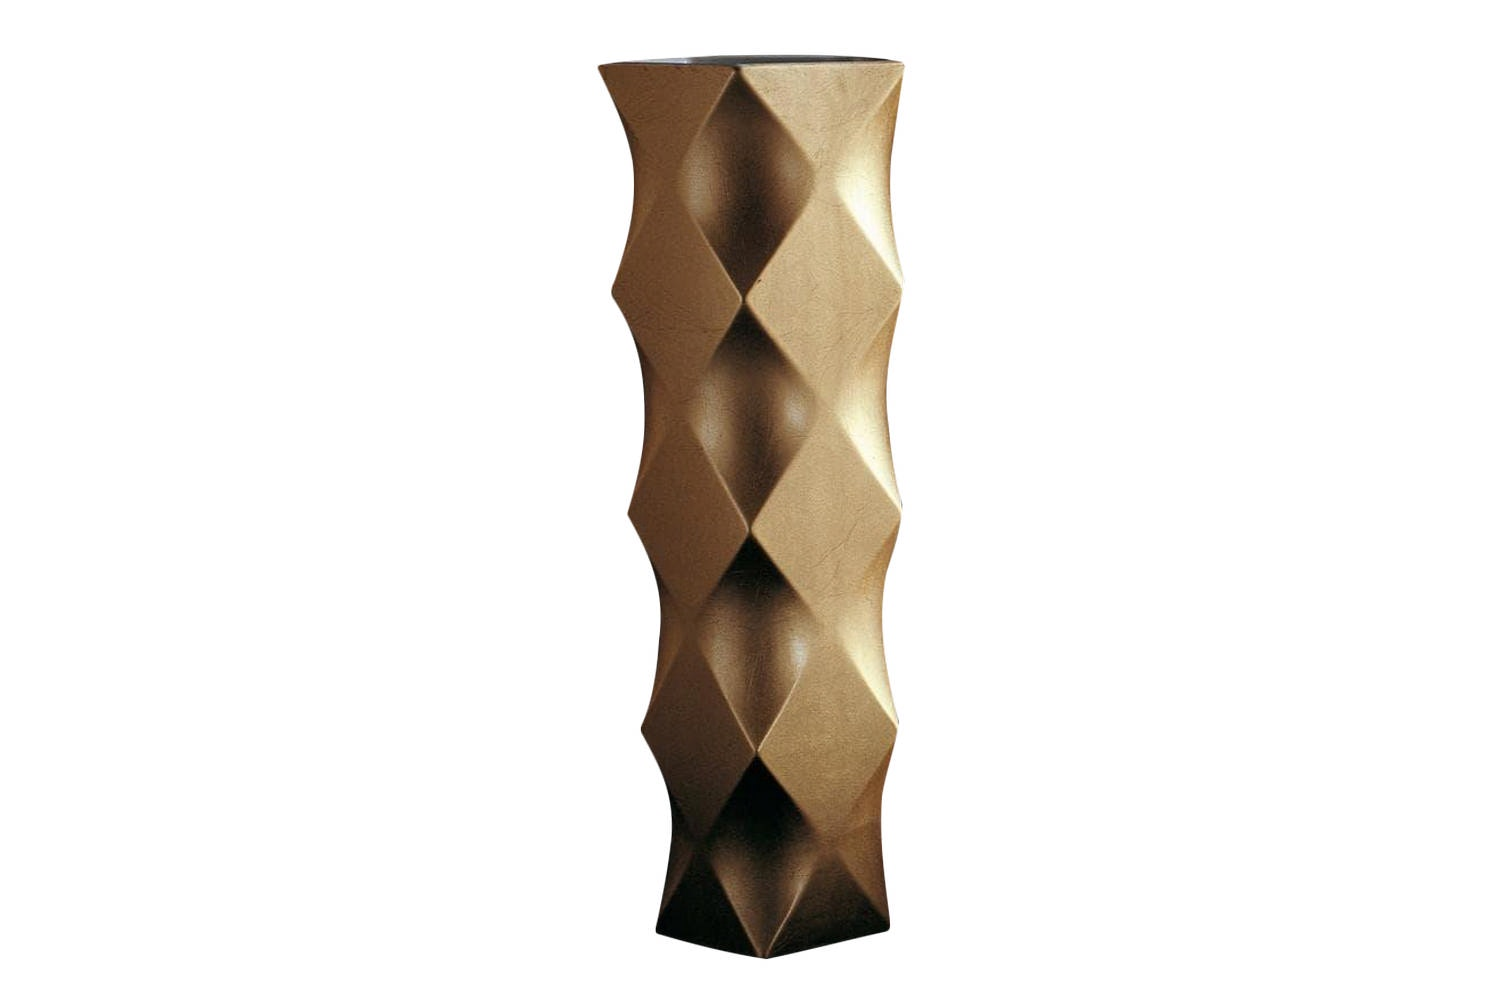 Joker High Vase in Gold or Silver by Nicole Aebischer for B&B Italia